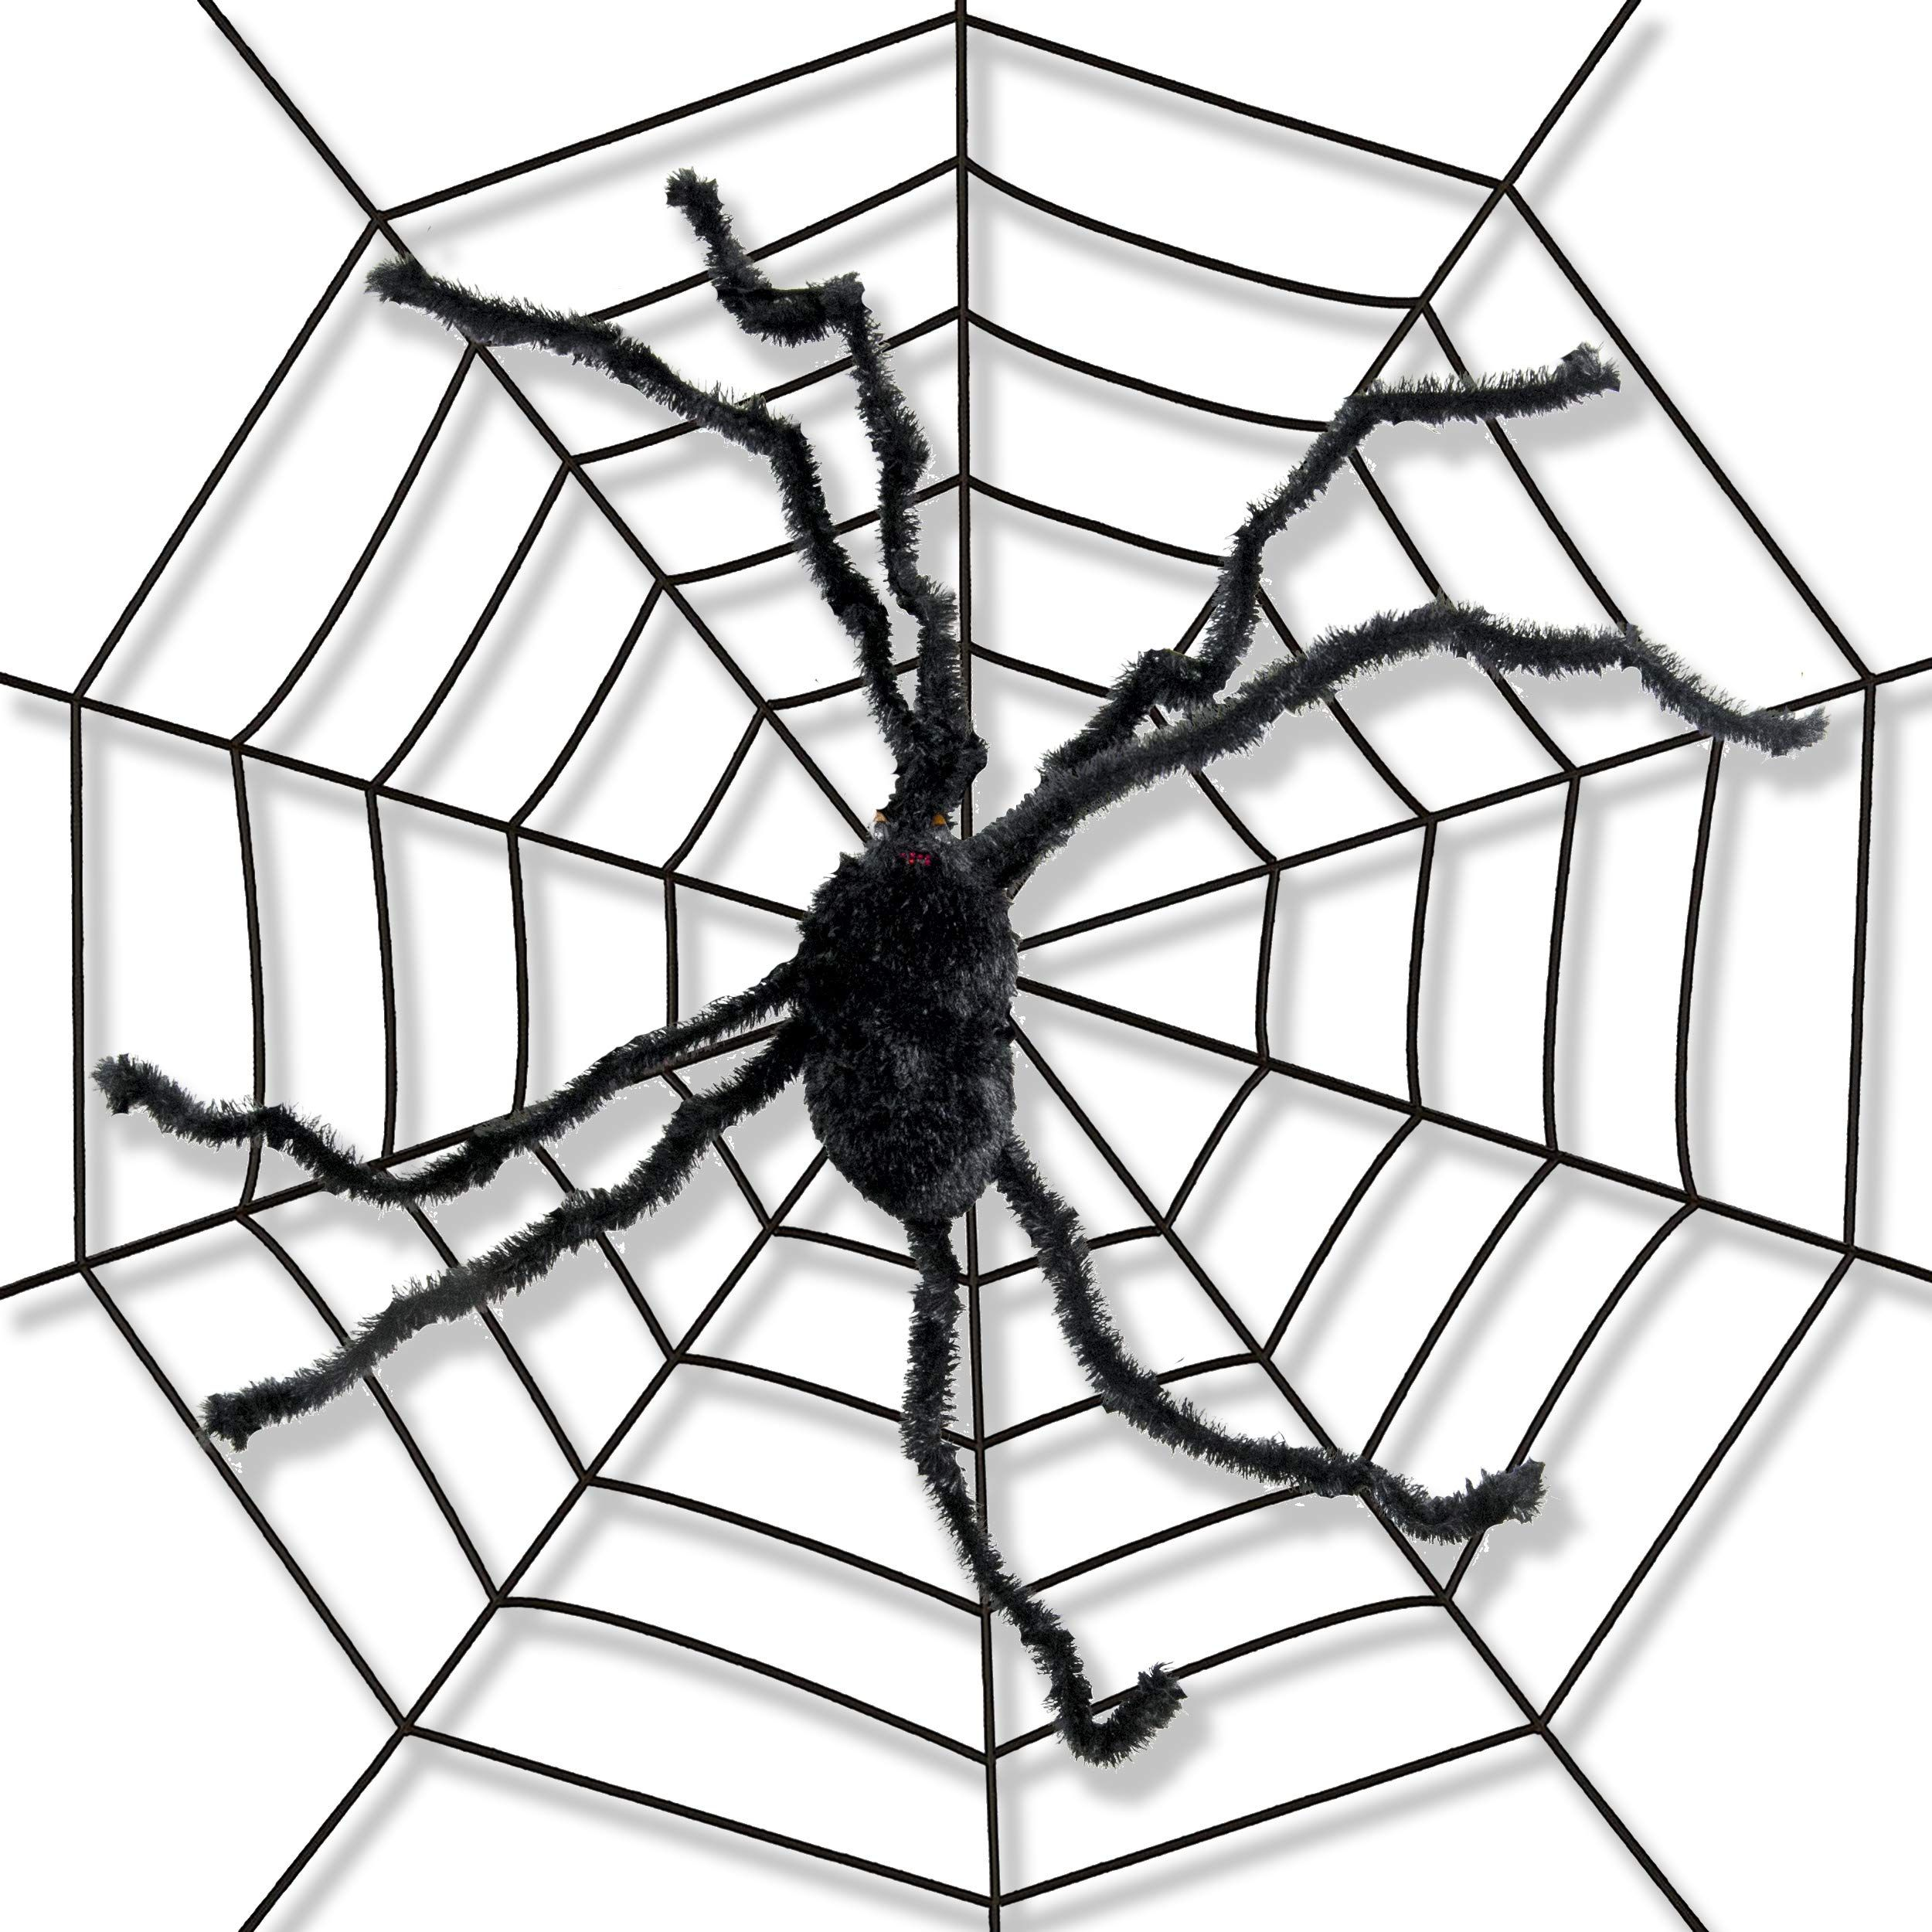 Terrifying Halloween Decorations Giant 5 Foot Spider Web With